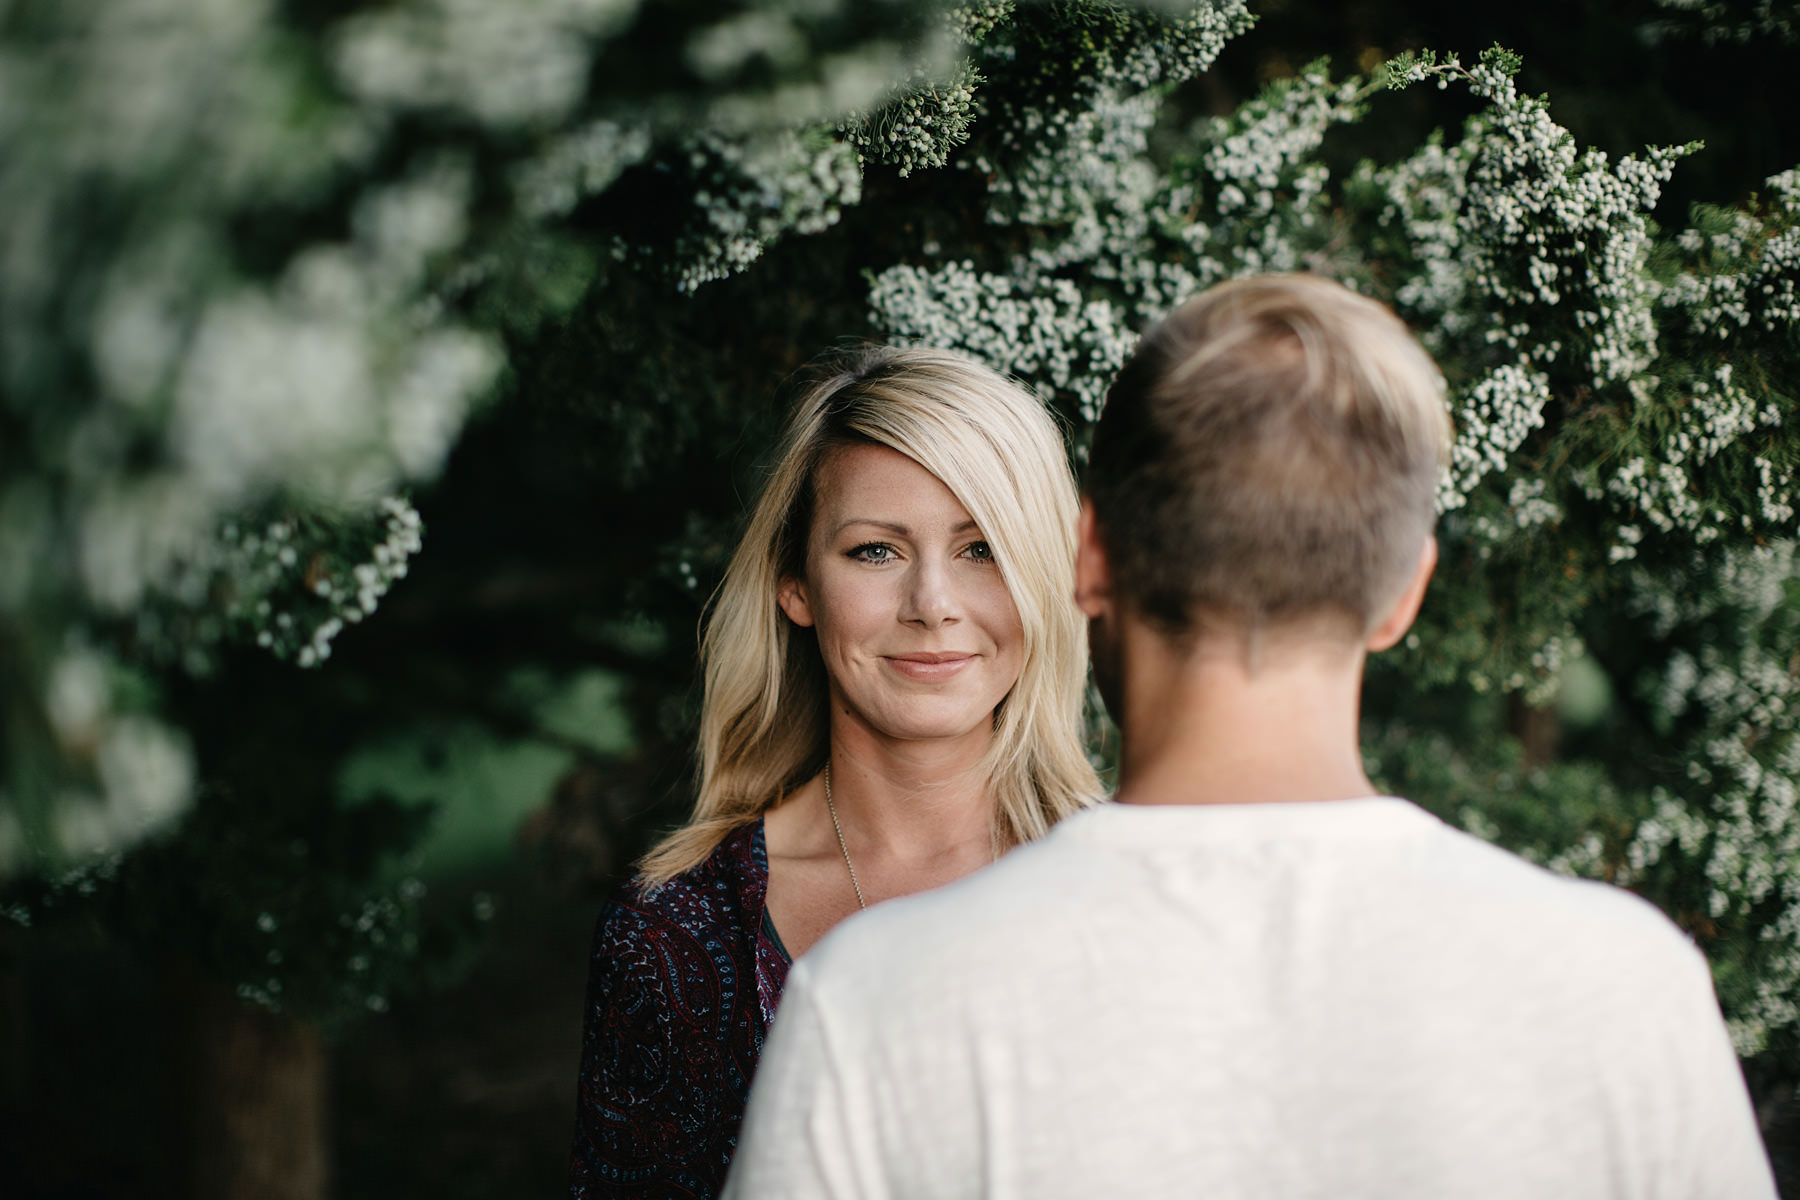 170_Shawnee Mission Park Summer Engagement Session Kansas City, Missouri_Kindling Wedding Photography.JPG